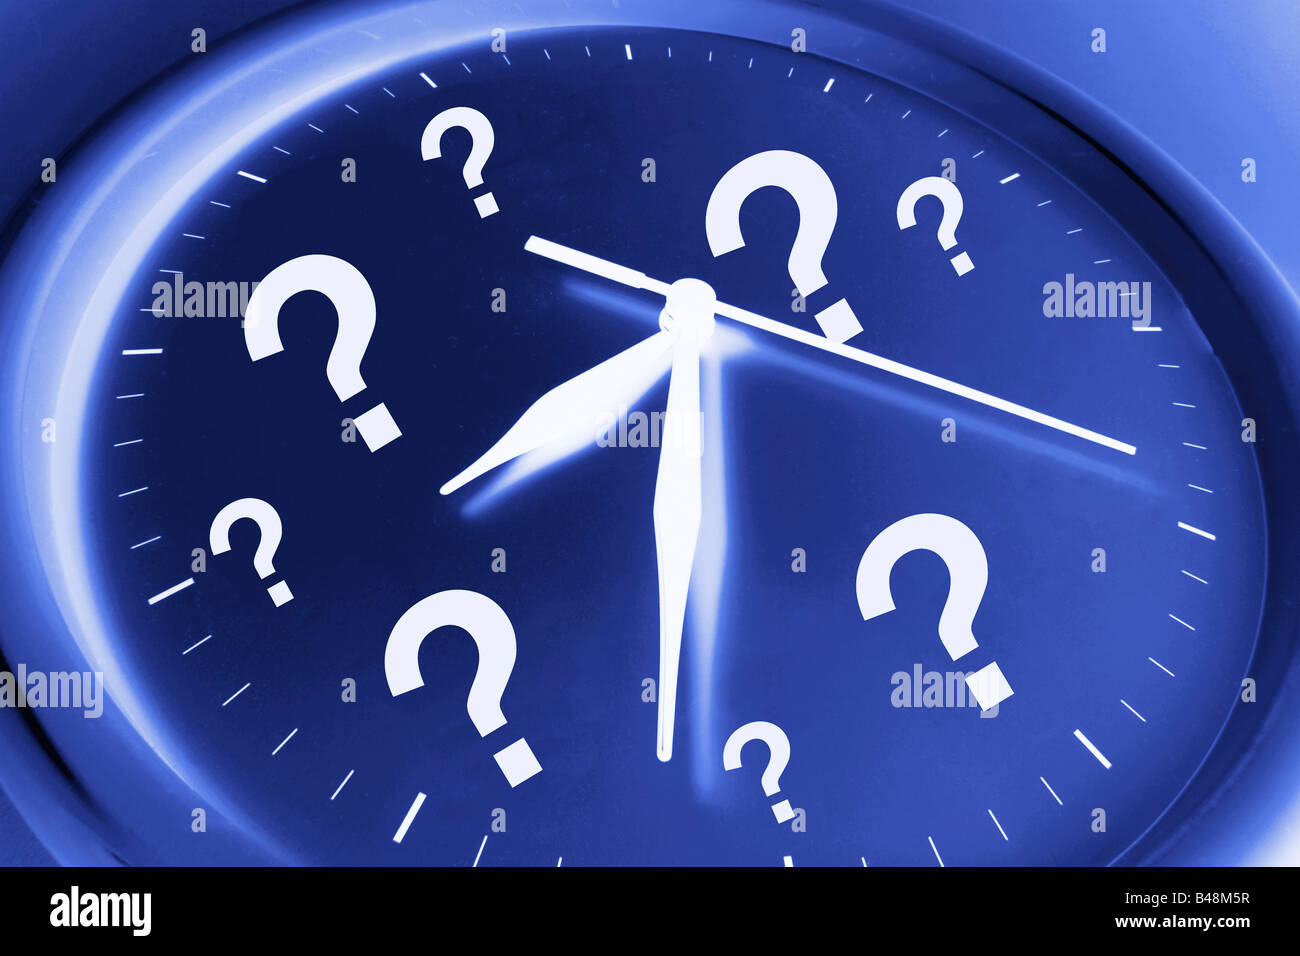 Wall Clock with Question Marks - Stock Image